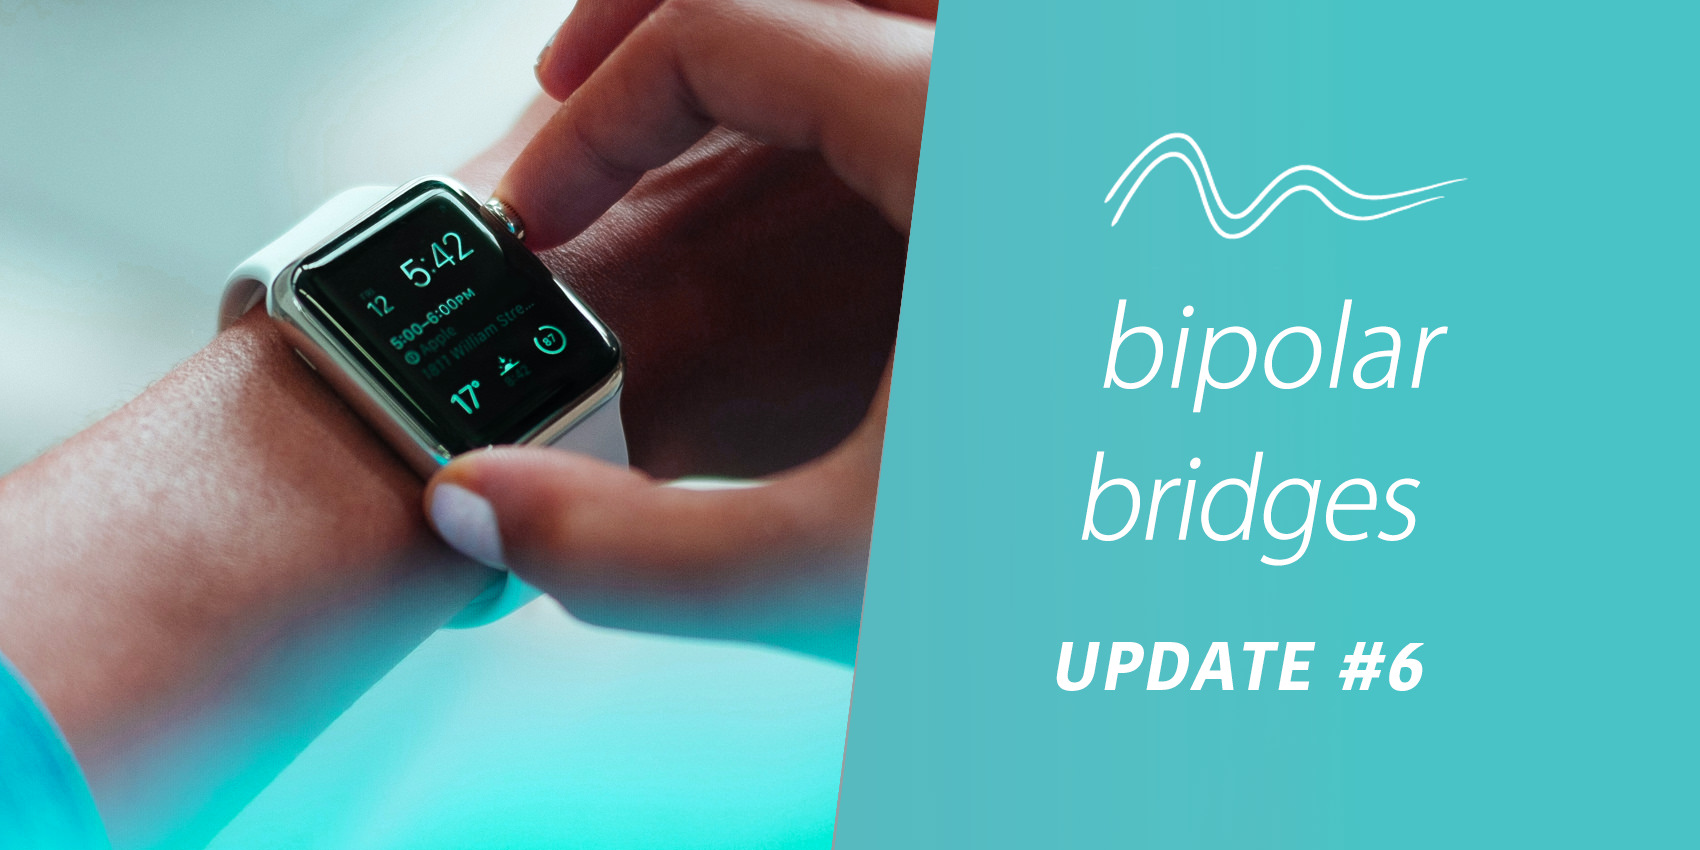 Bipolar Bridges Update 6: What do people with bipolar disorder look for in health apps?